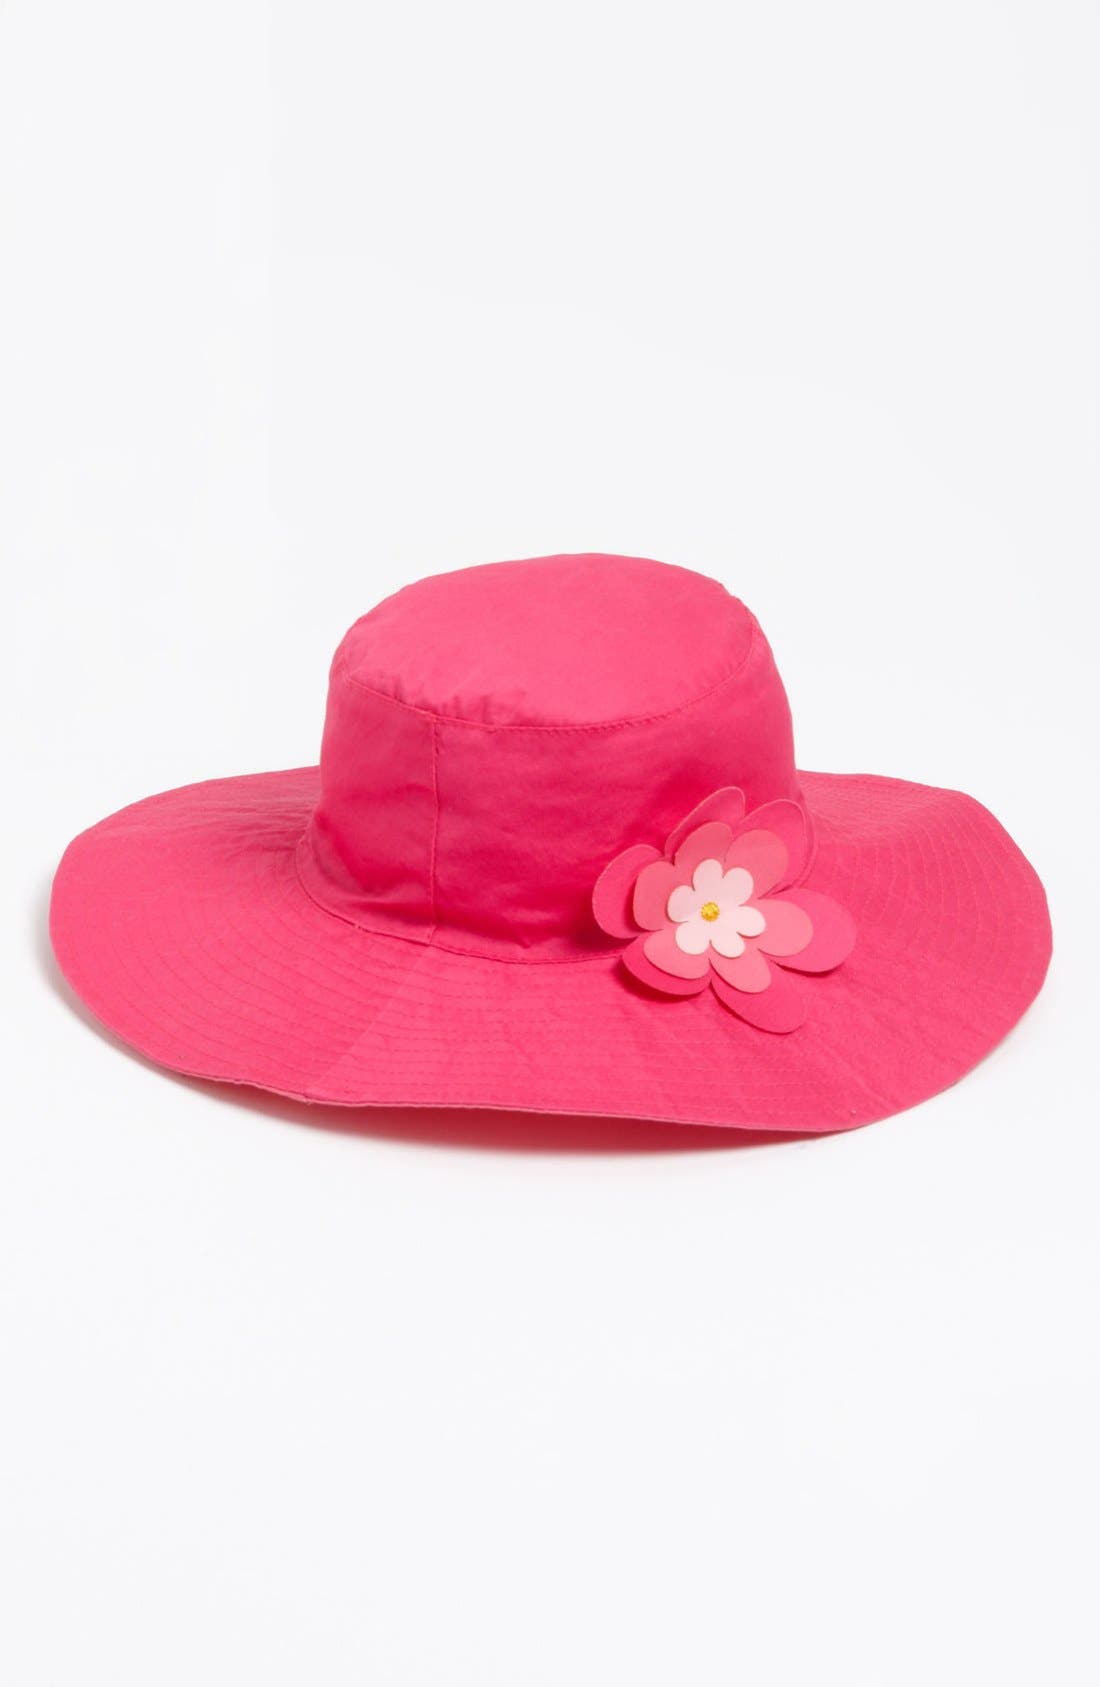 Main Image - Nolan Glove Sunhat (Toddler)